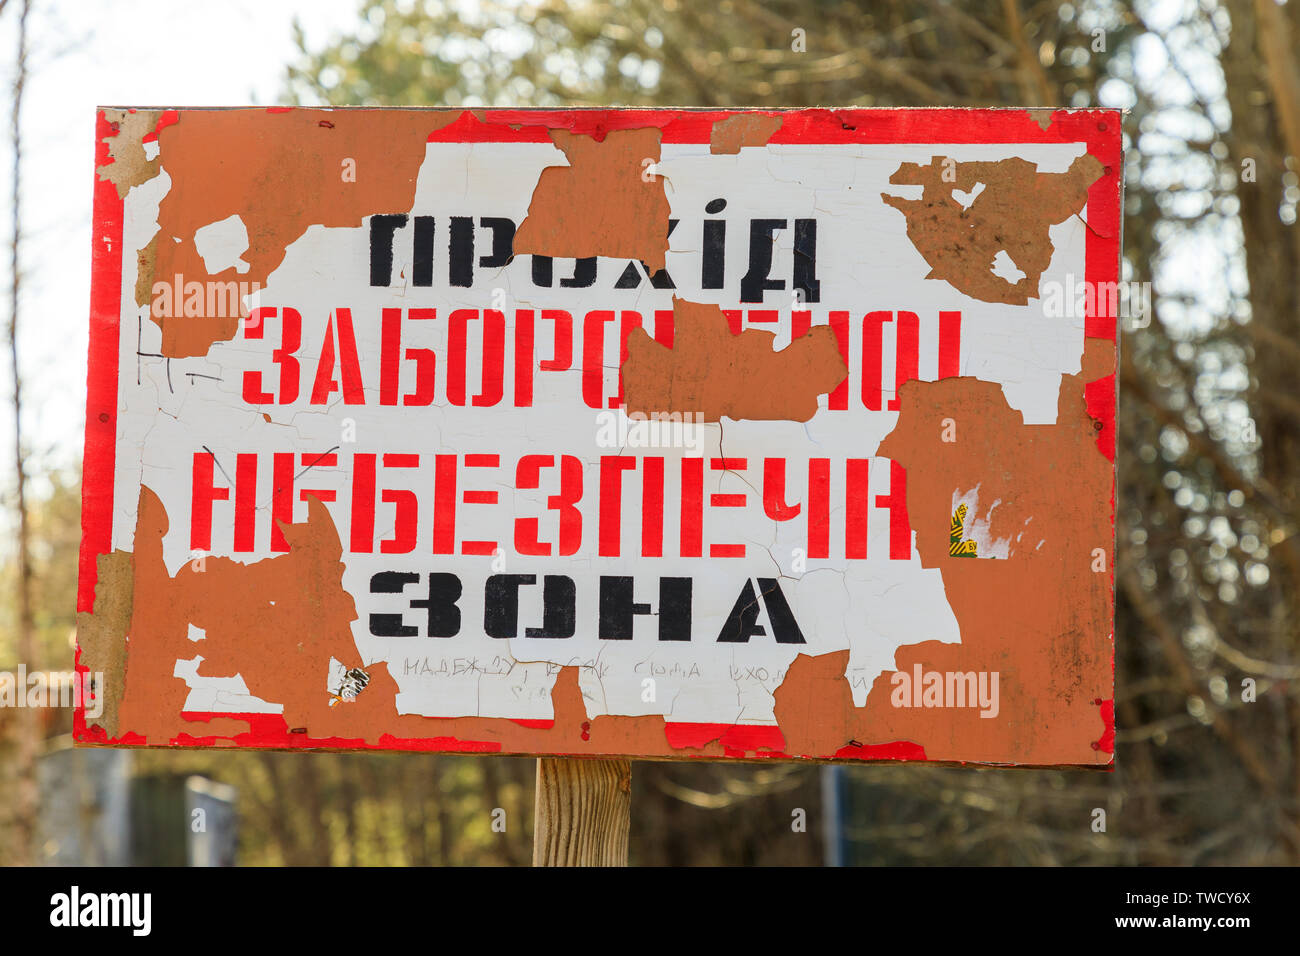 Eastern Europe, Ukraine, Pripyat, Chernobyl. Rusted warning sign. April 09, 2018. - Stock Image